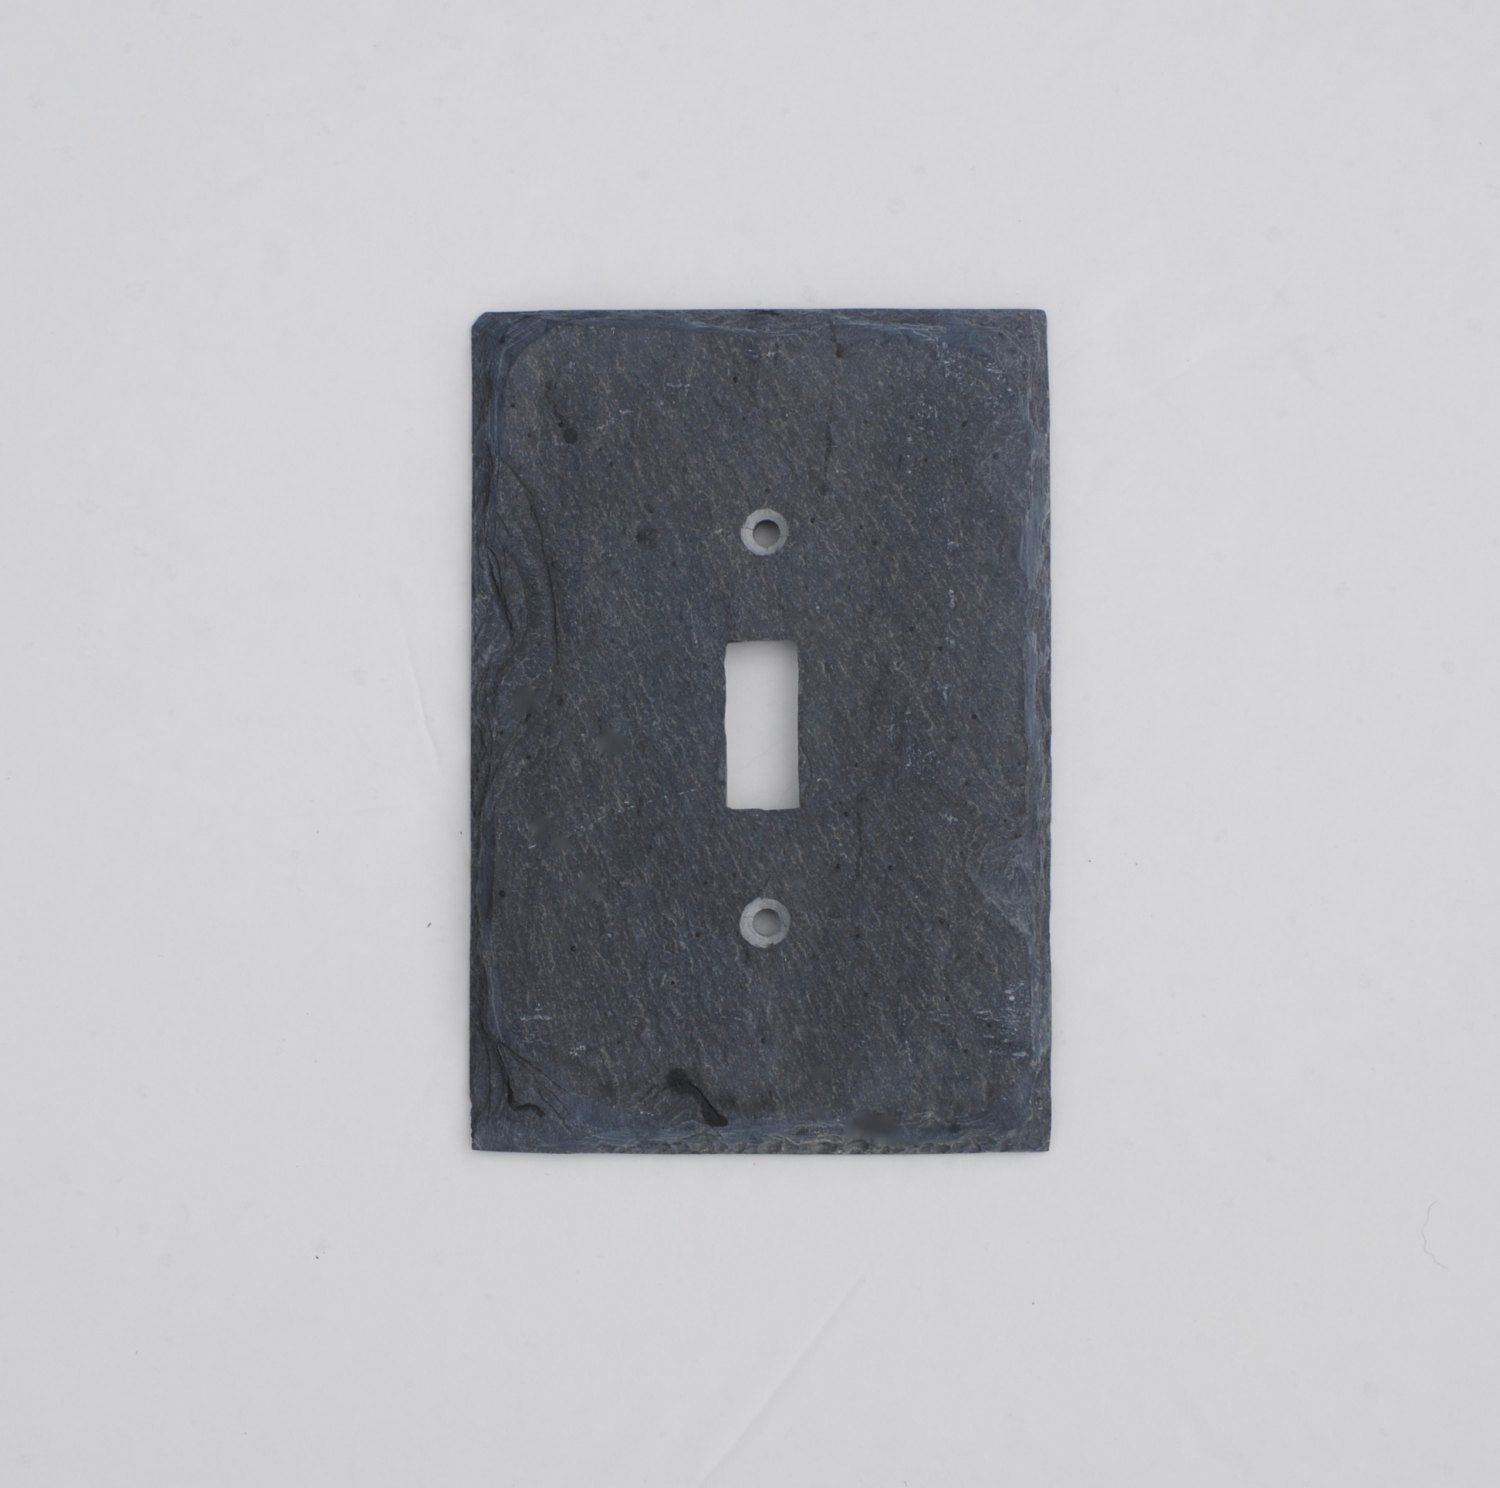 Decorative Light Switch Plates Pleasing Decorative Light Switch Cover Switch Plate Wall Plate Rustic Inspiration Design